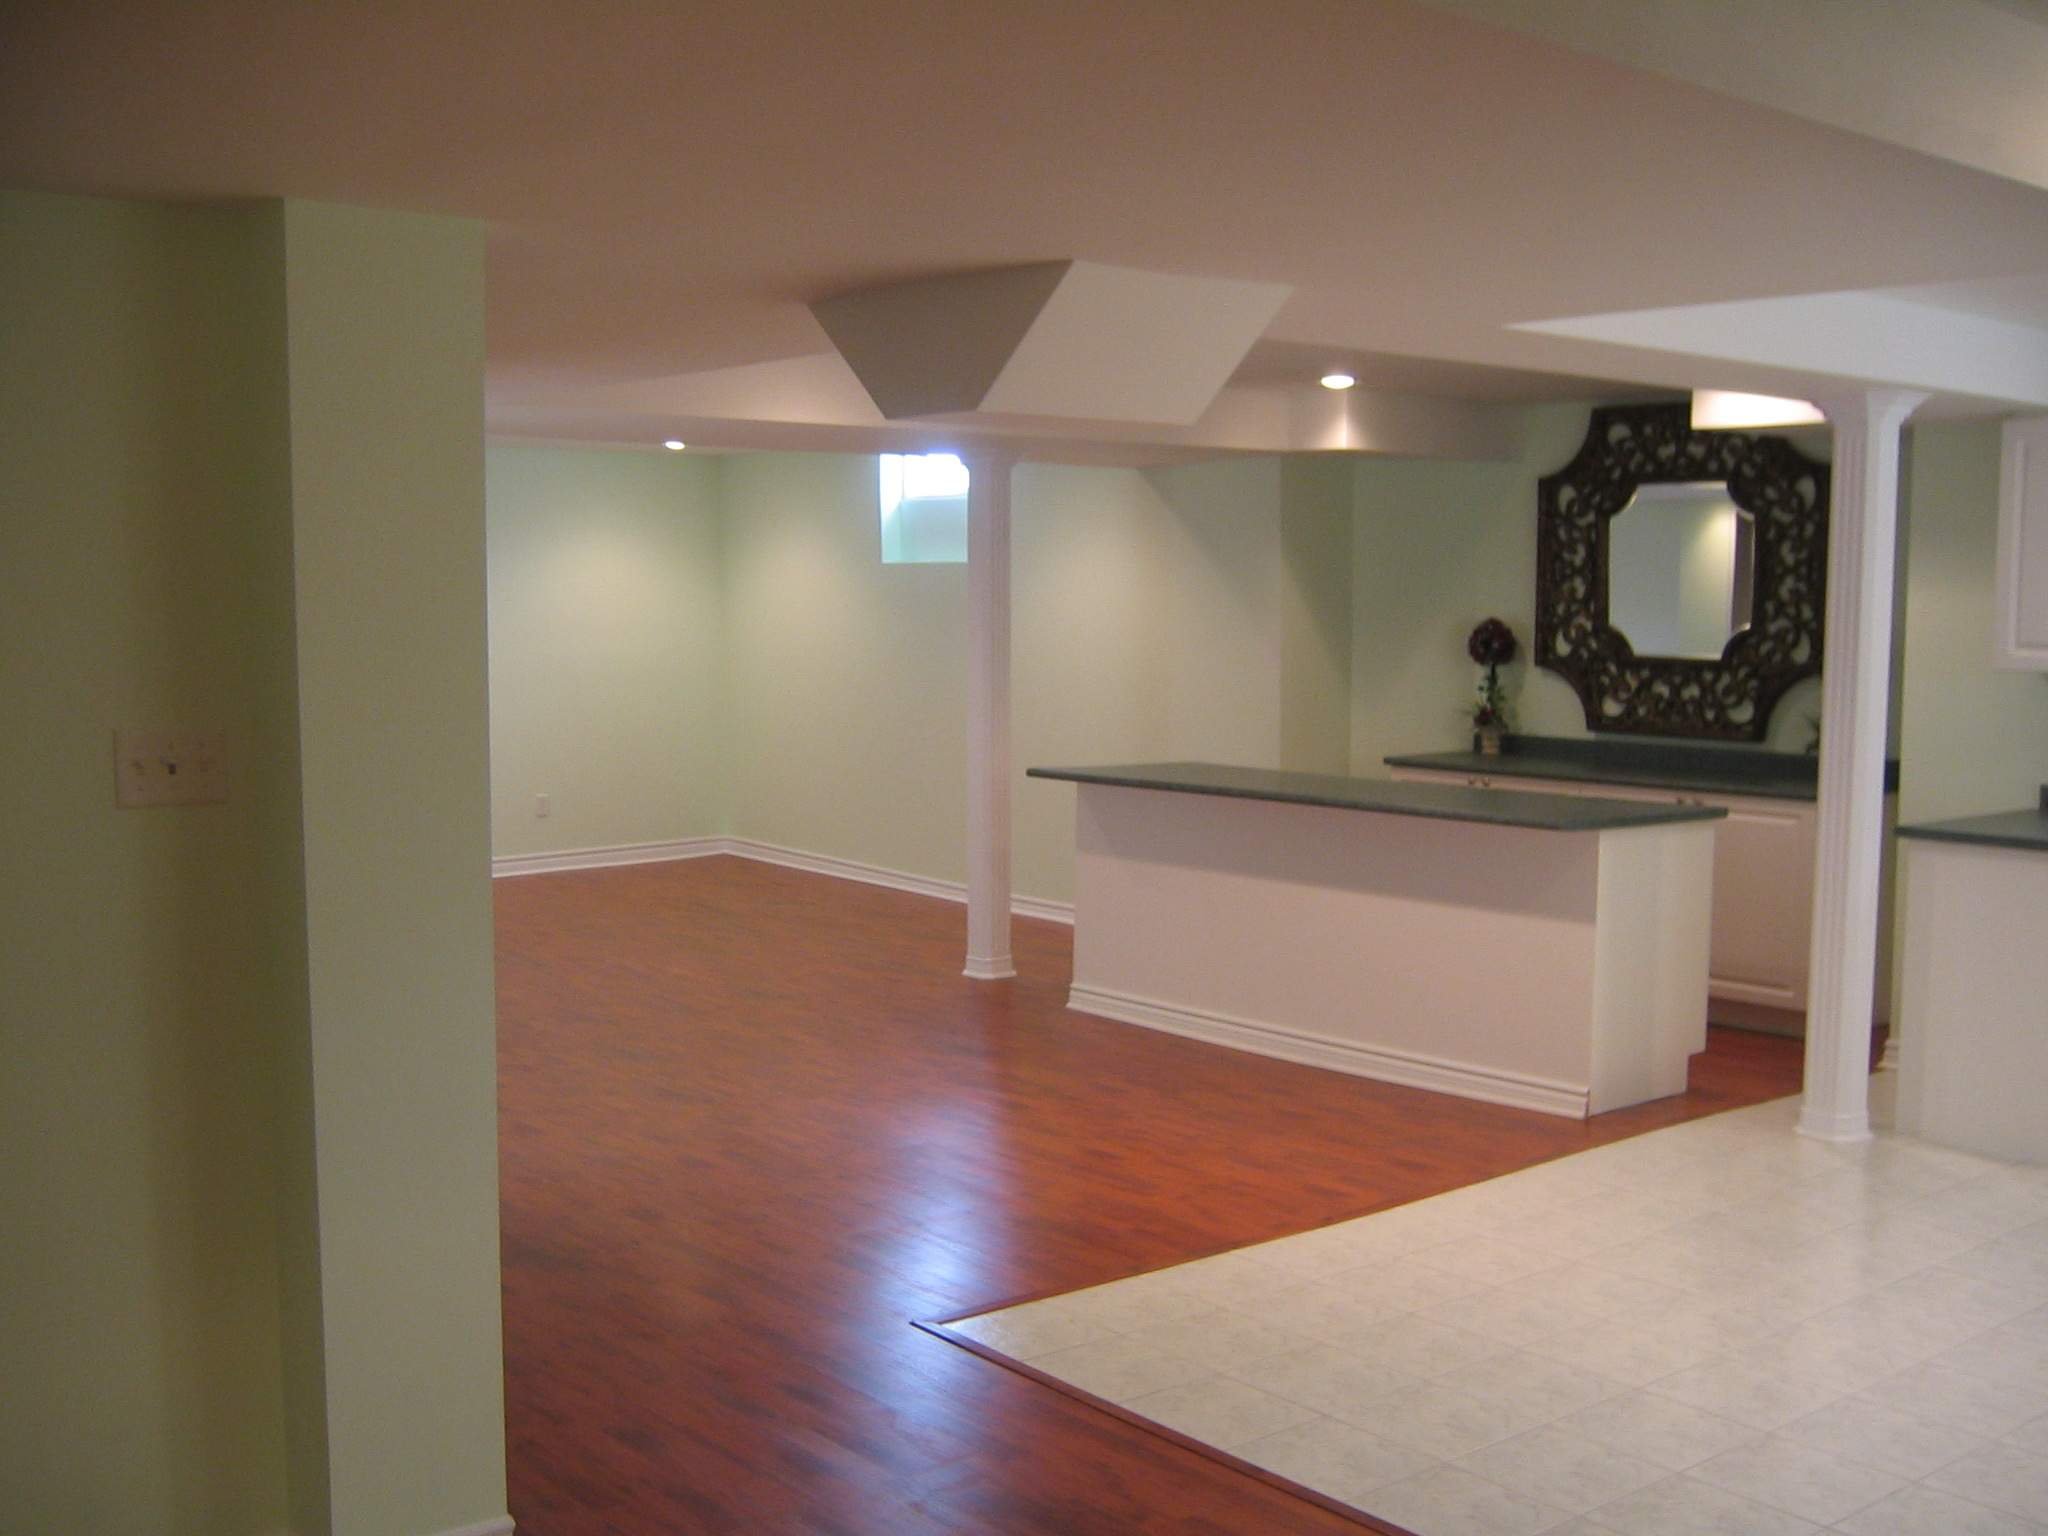 Basement in torontorenovation and finishing basement in toronto - Basement Finishing In Gta